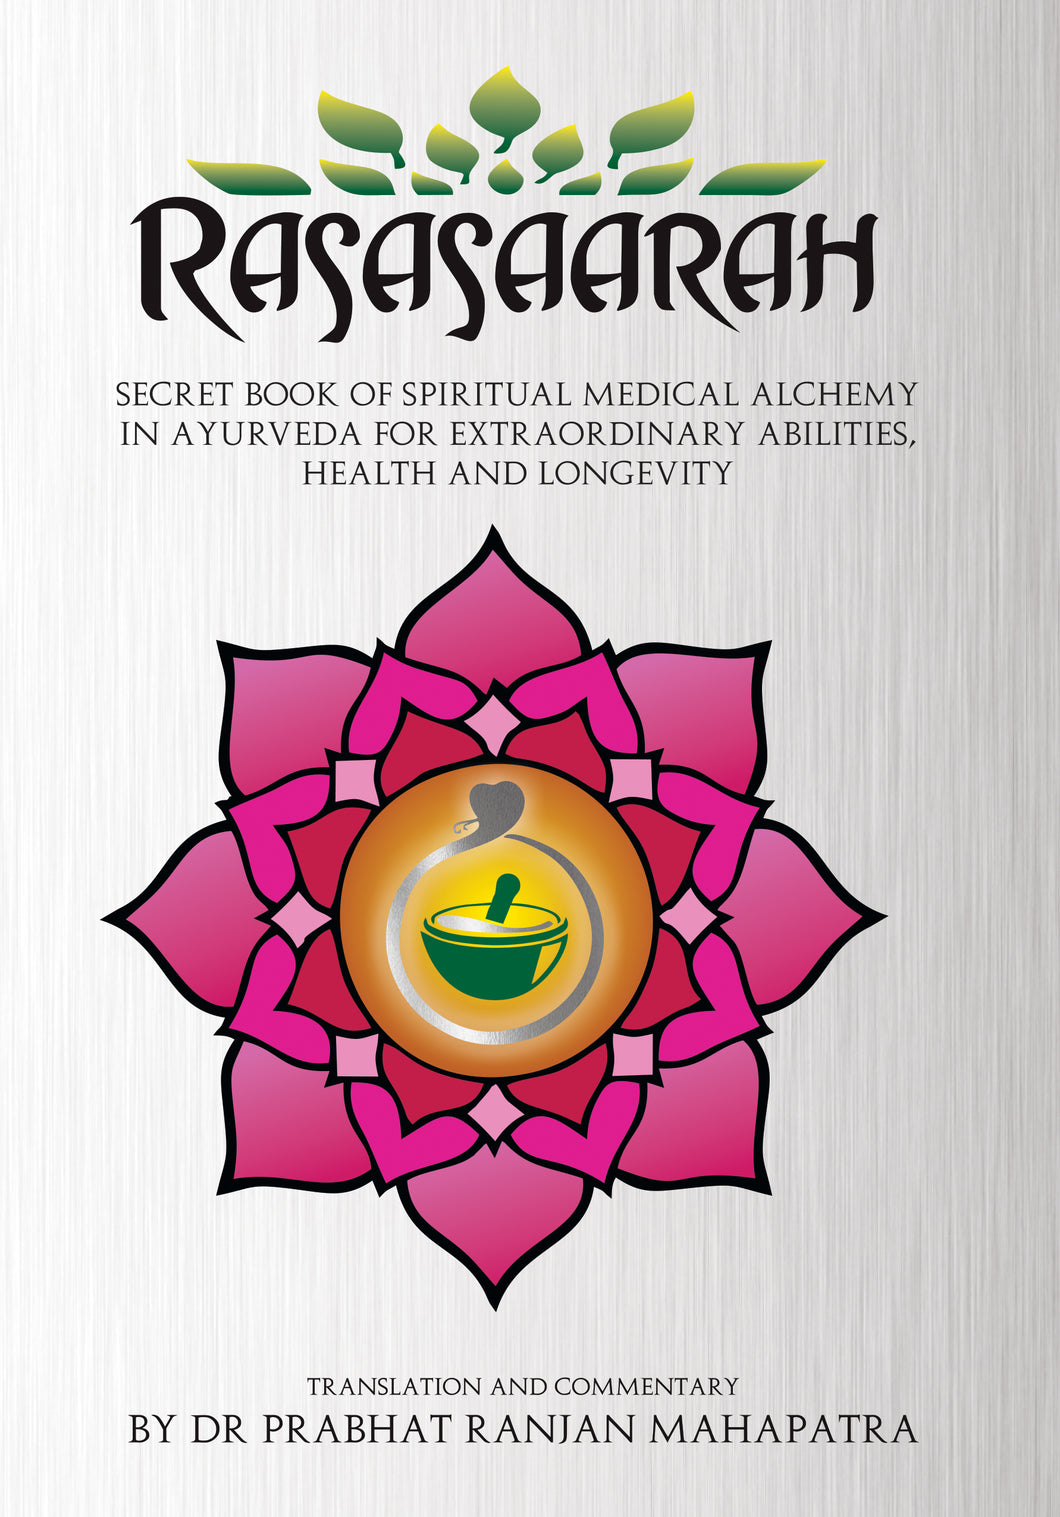 Rasasaarah: Secret Book of Spiritual Medical Alchemy